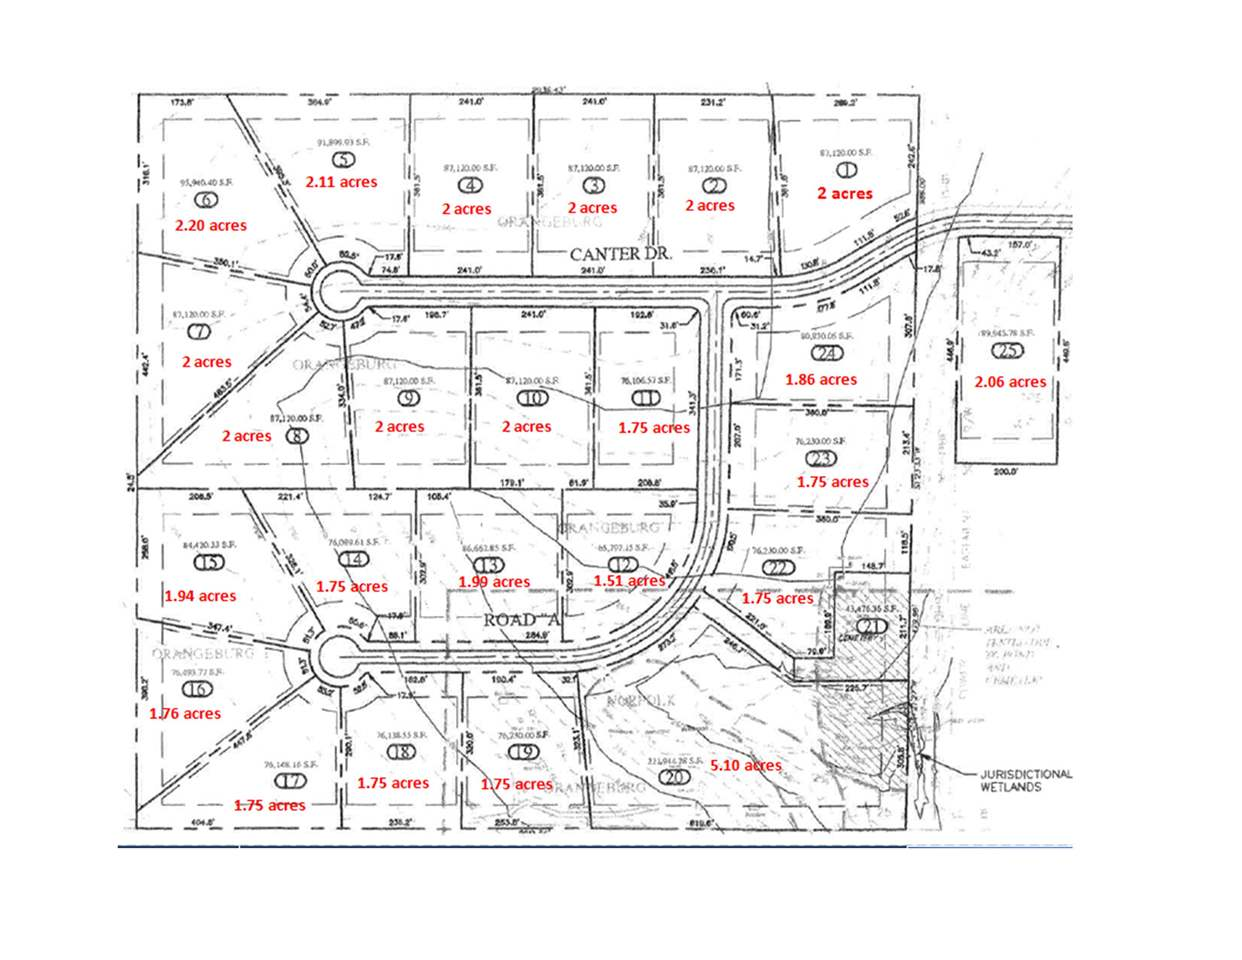 Lot 5 The Farm - Phase 2 , Perry, GA 31069